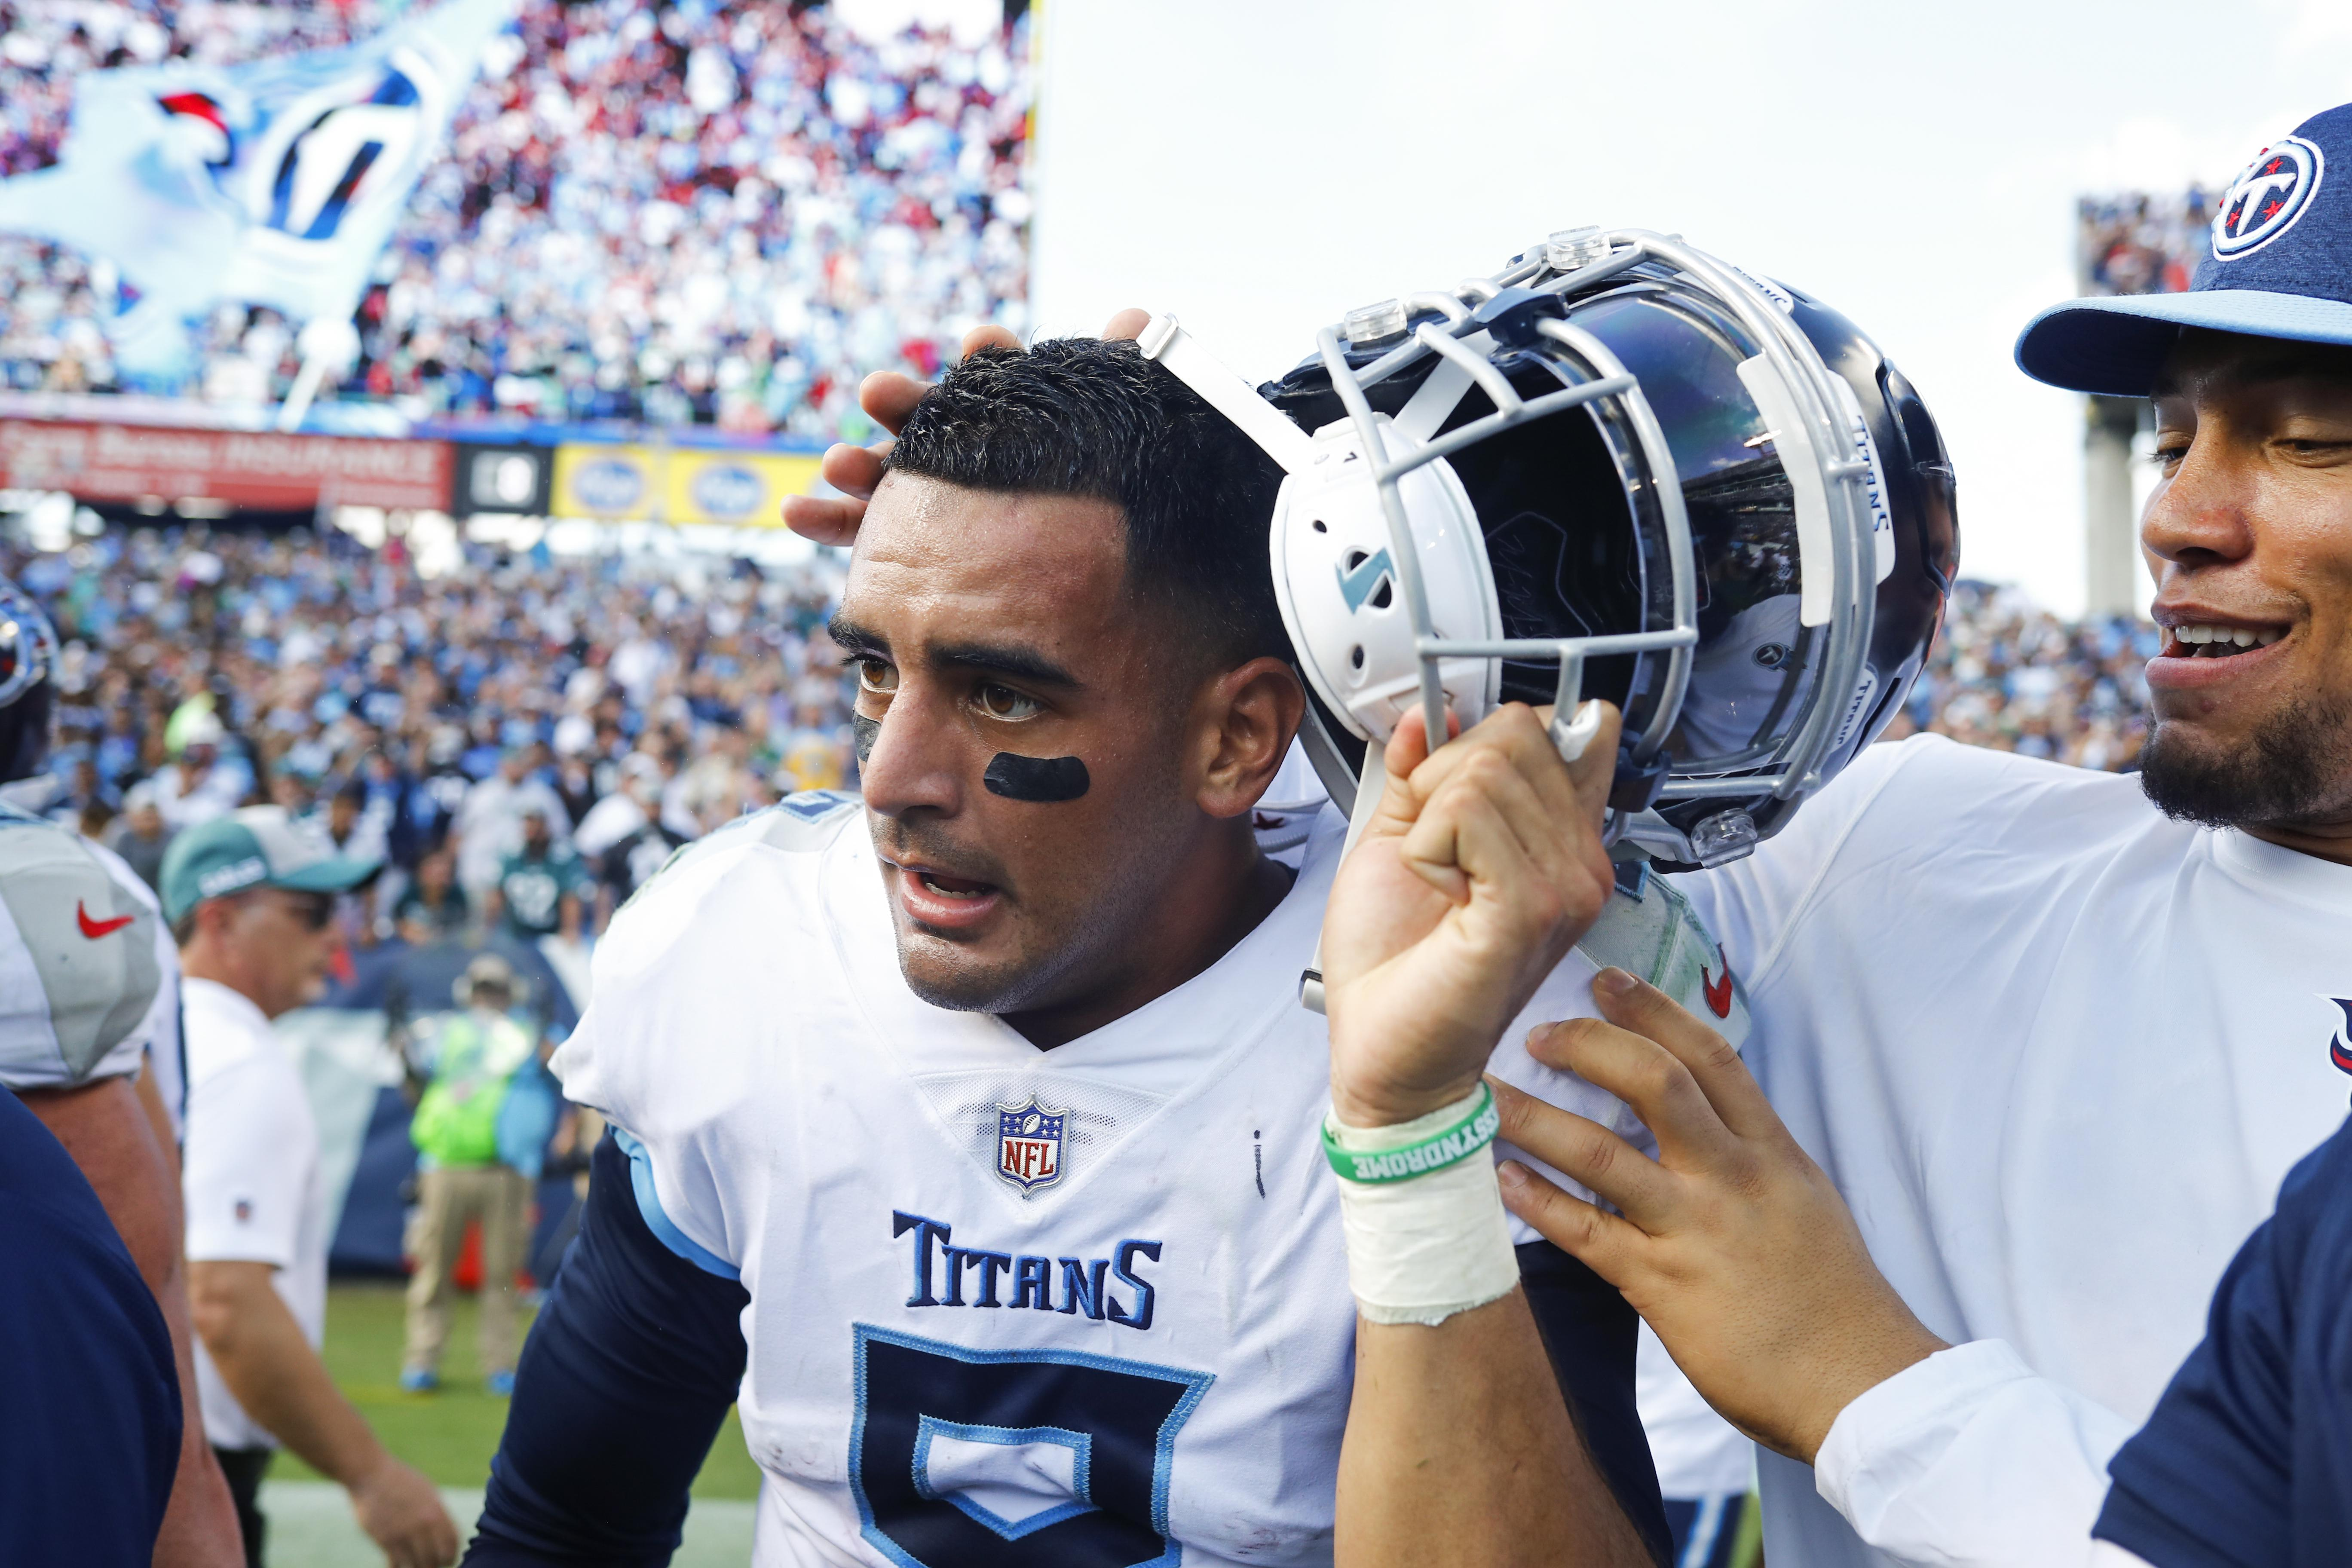 NASHVILLE, TN - SEPTEMBER 30: Marcus Mariota #8 of the Tennessee Titans is congratulated as he removes his helmet after defeating the Philadelphia Eagles 26-23 in overtime at Nissan Stadium on September 30, 2018 in Nashville, Tennessee. (Photo by Wesley Hitt/Getty Images)